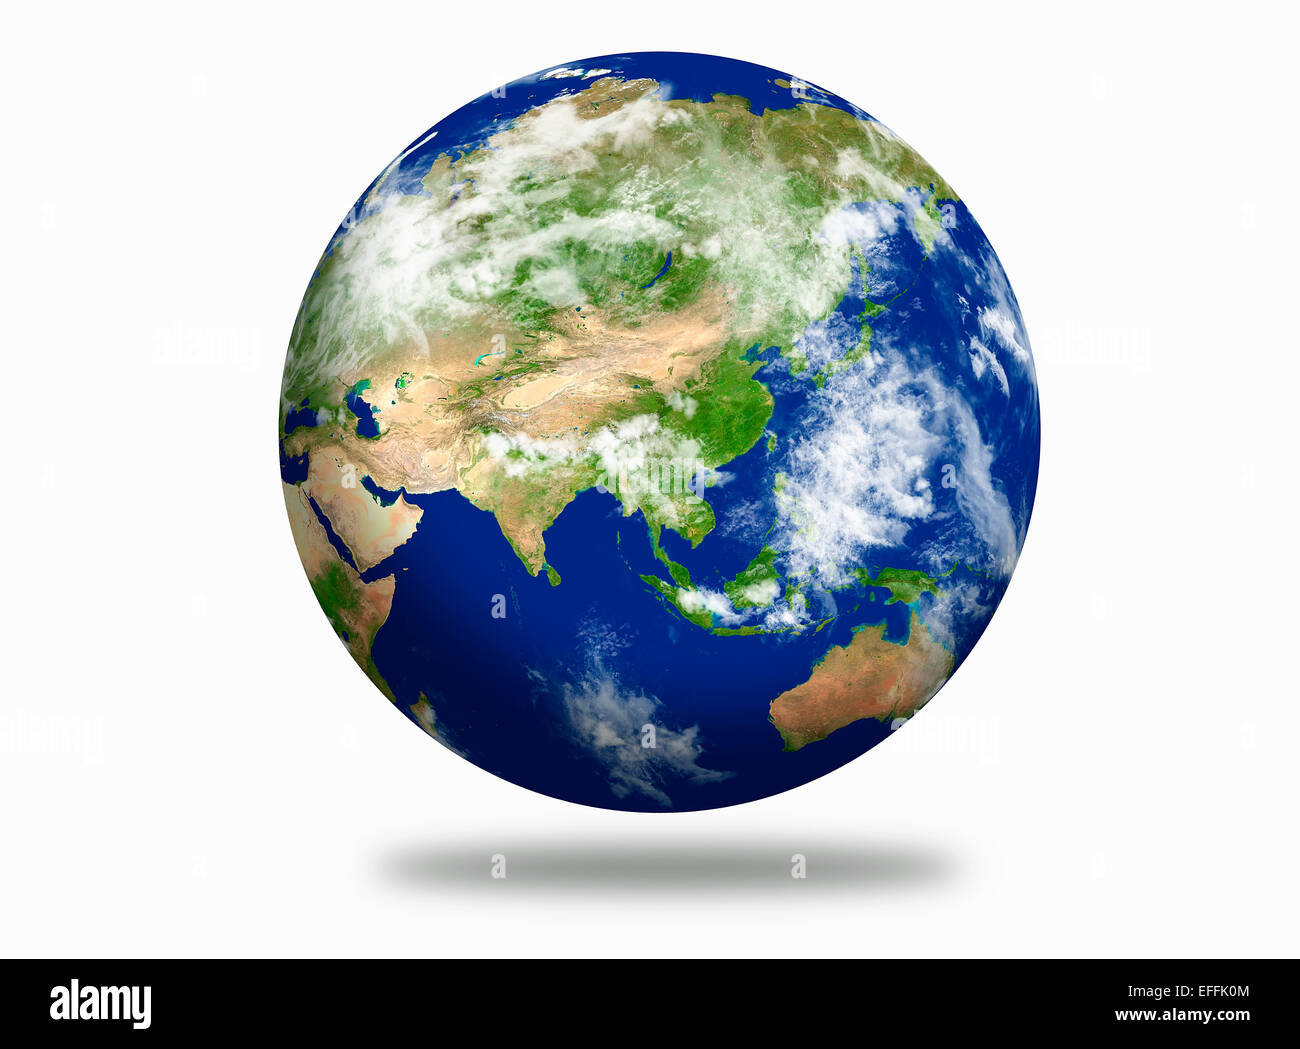 Earth planet - Stock Image